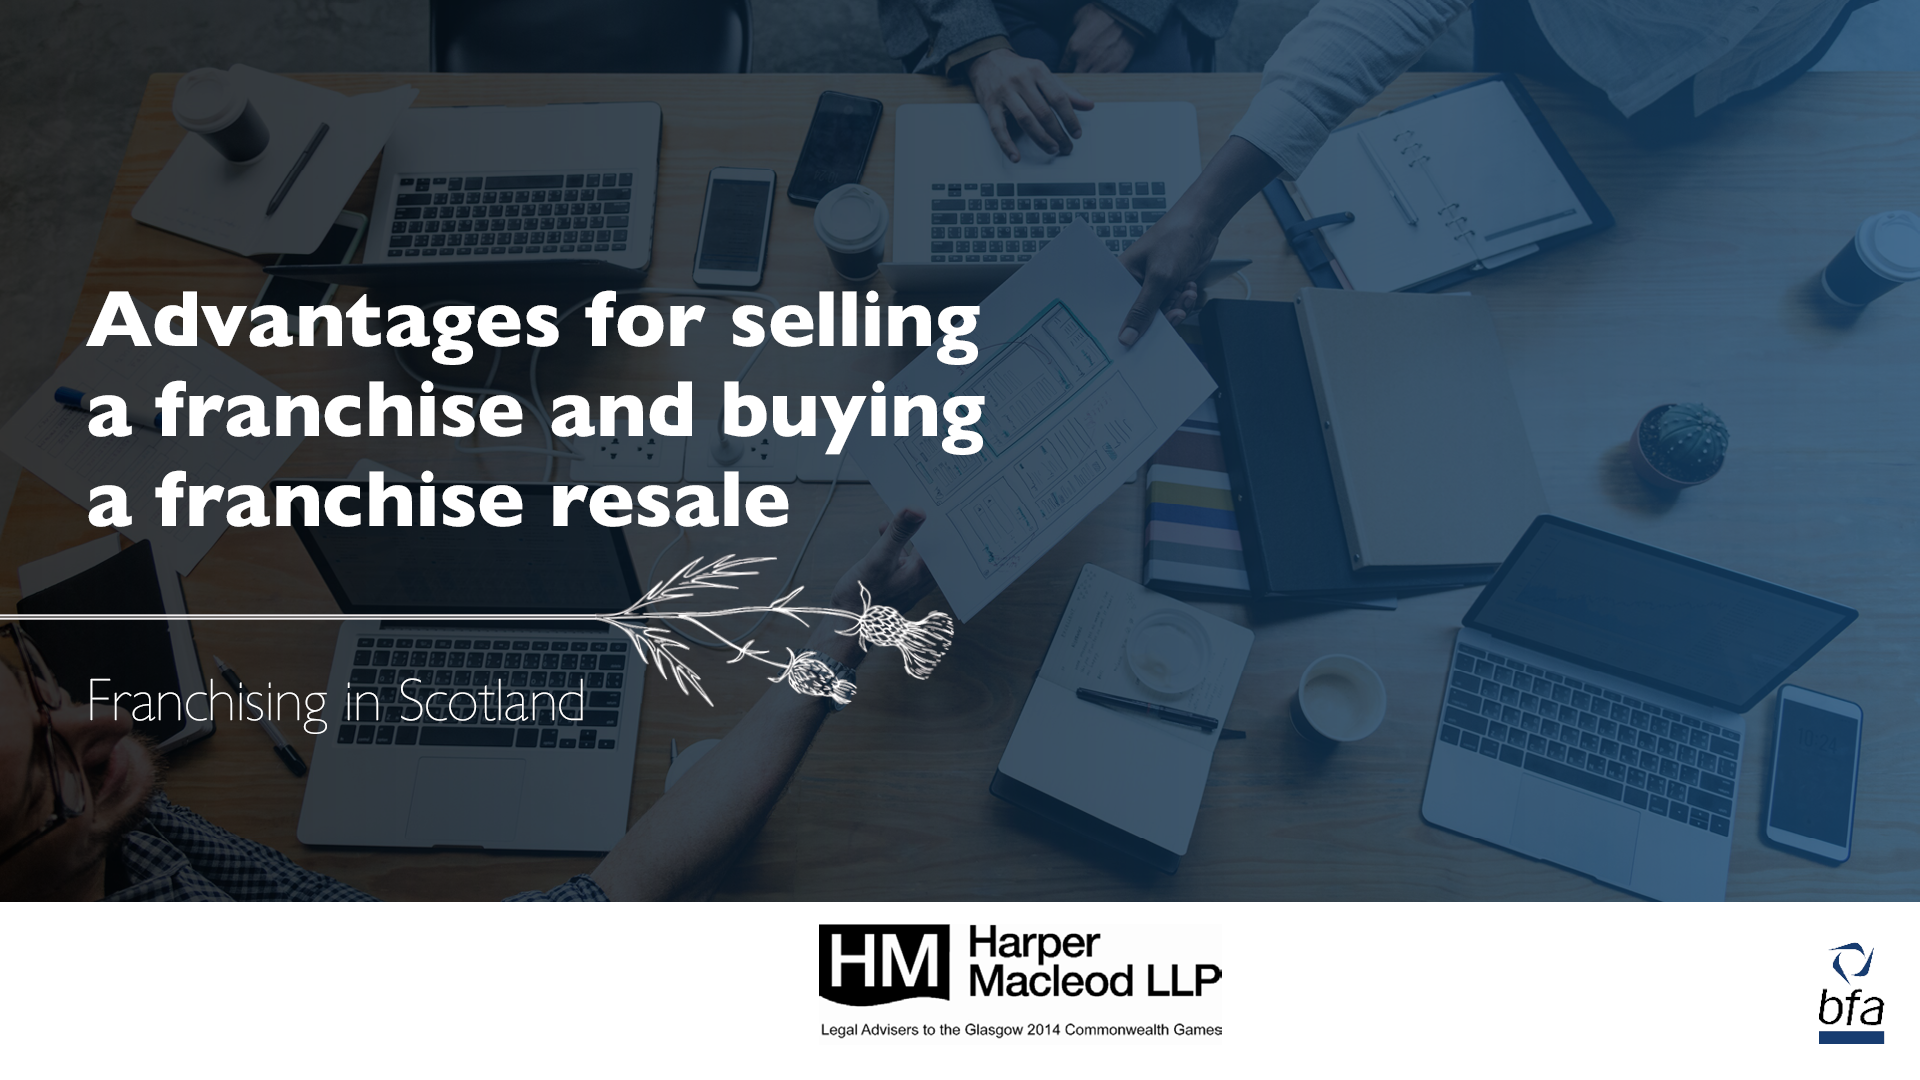 Advantages for selling a franchise and buying a franchise resale